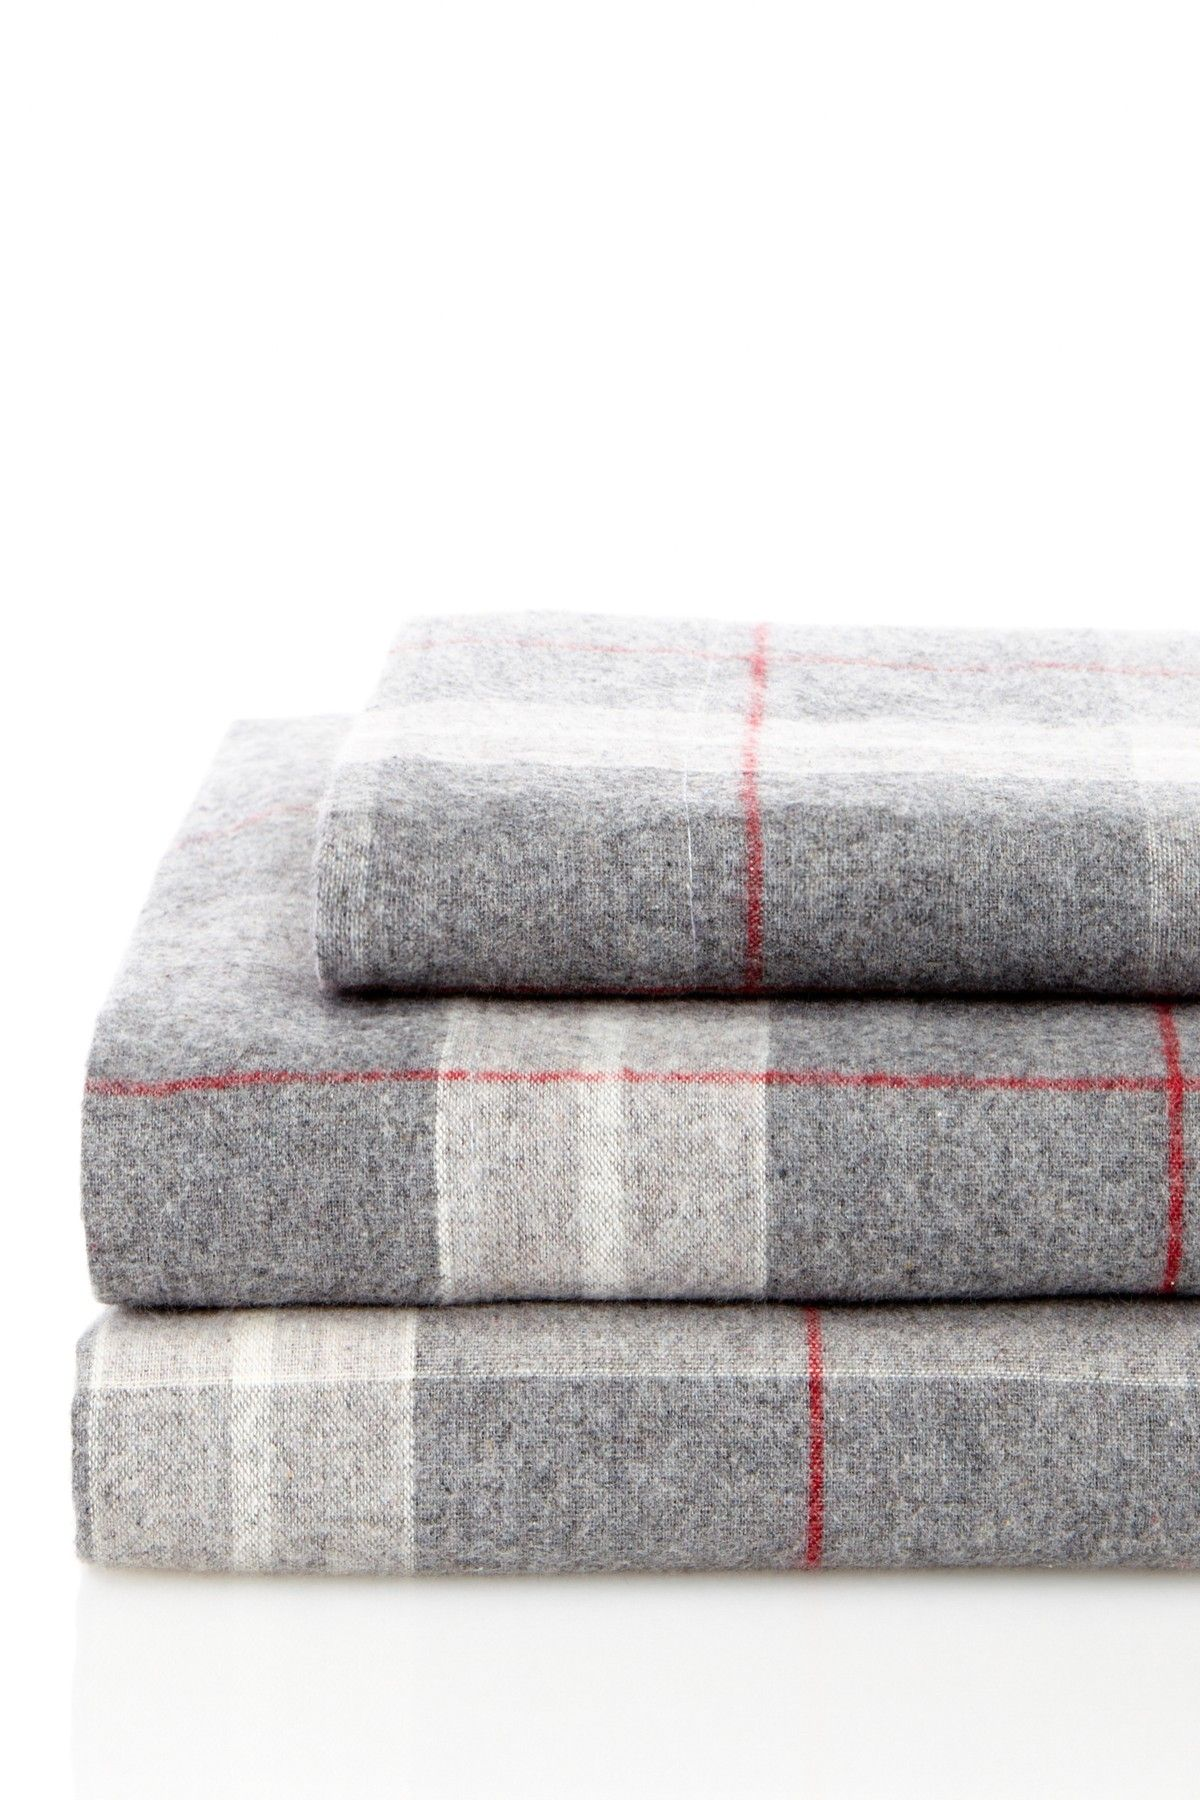 Red flannel sheets  Flannel Sheet Set  GreyRed Plaid Pattern  HauteLook twin